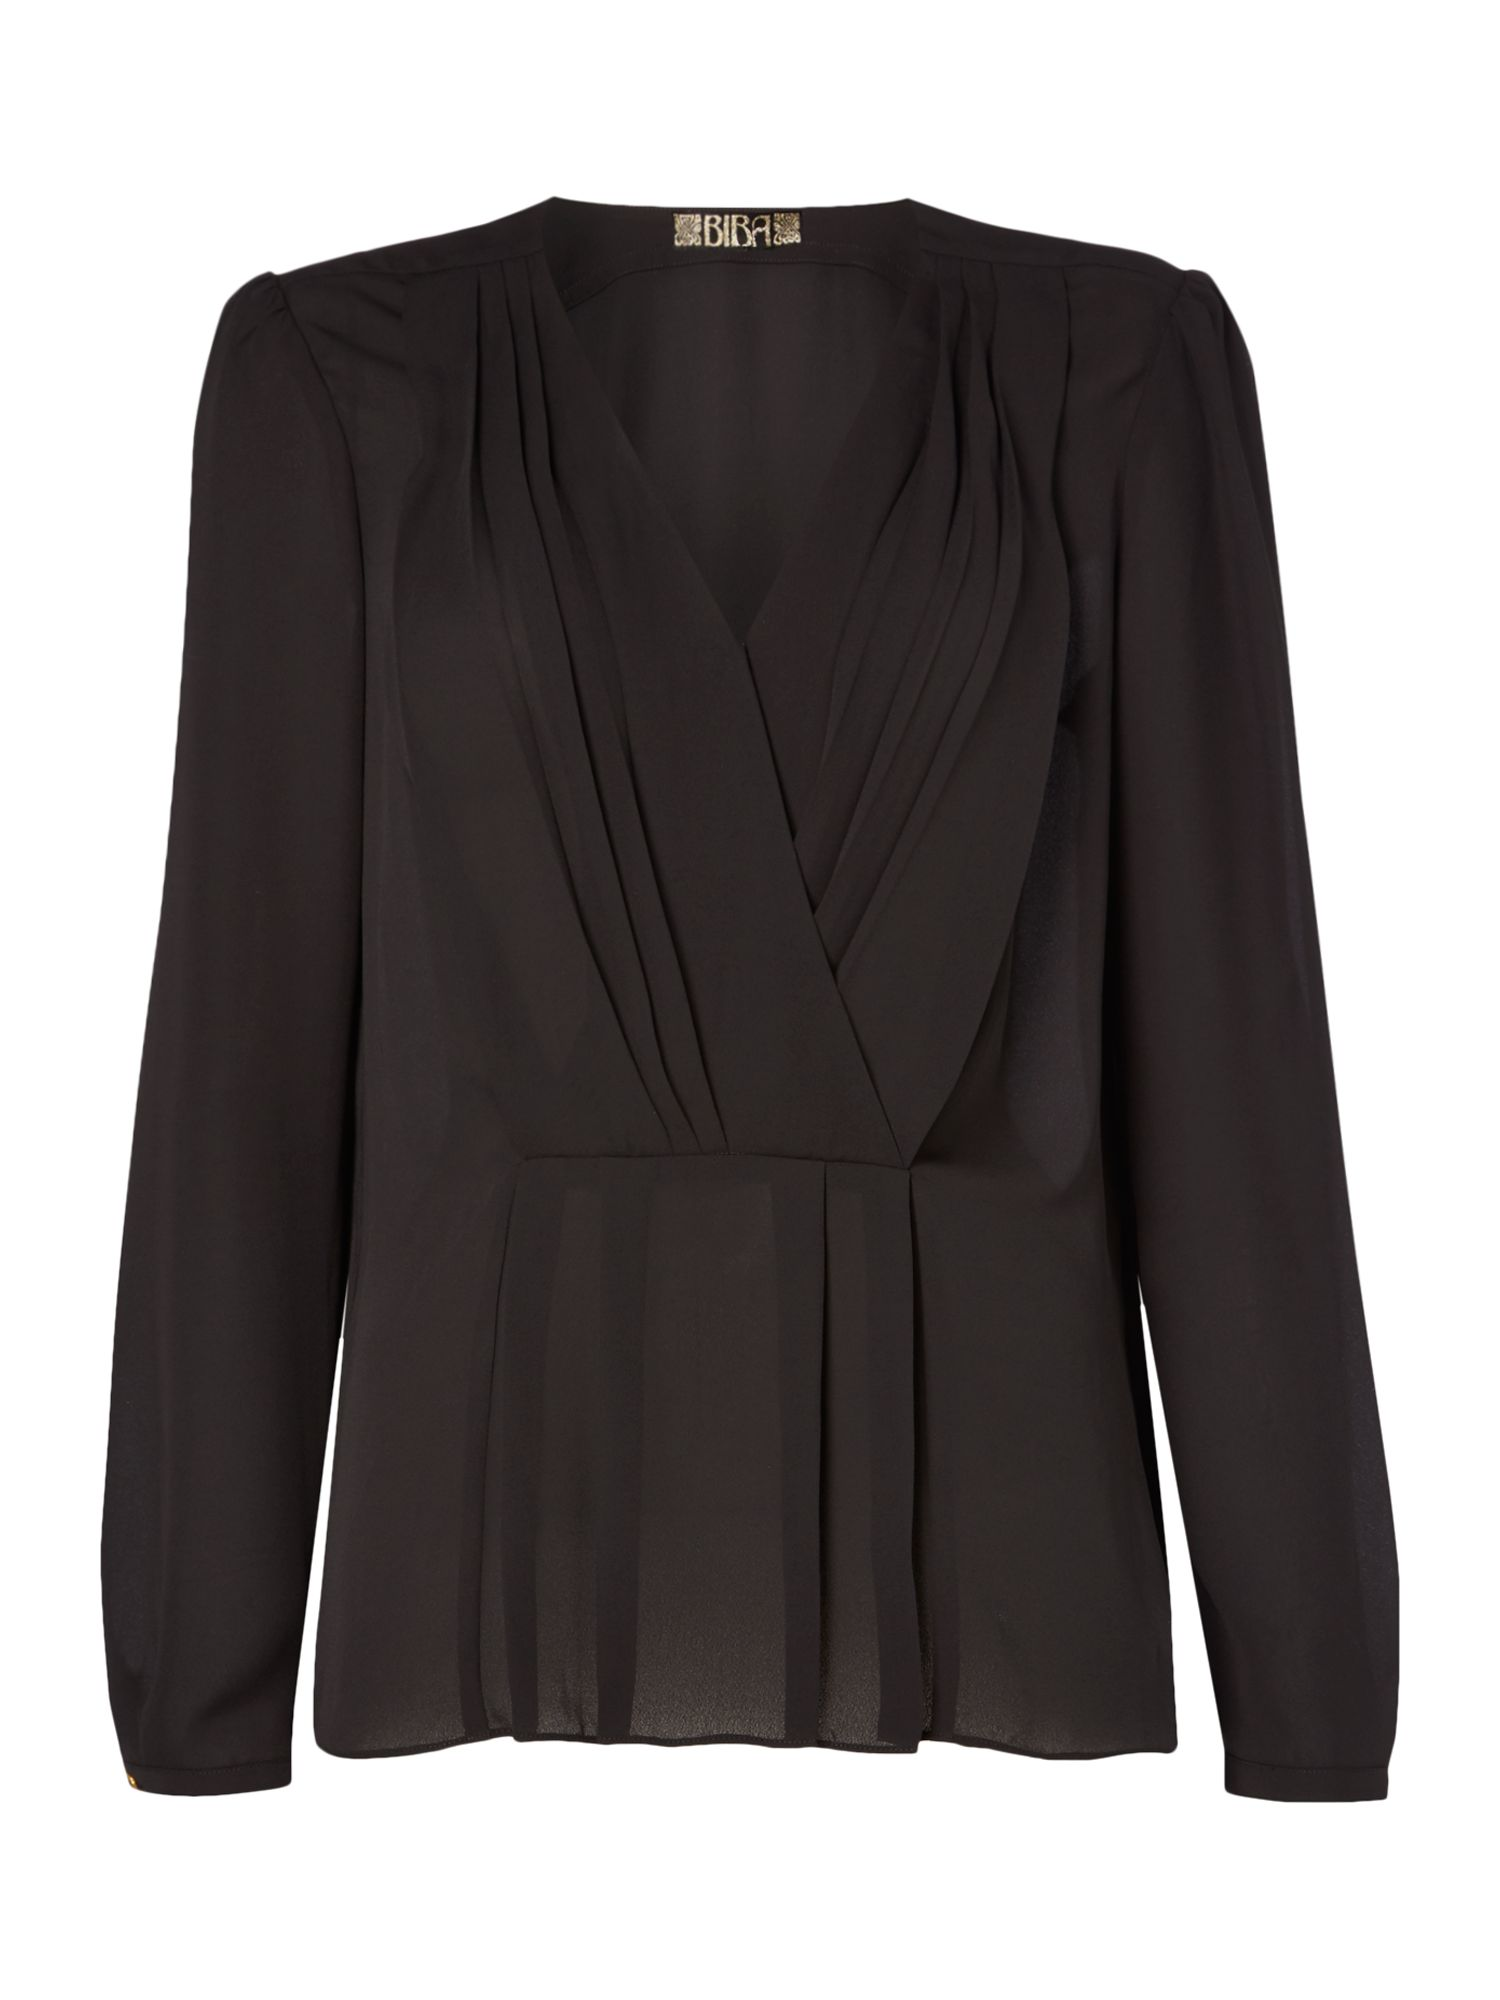 Biba Pleat front peplum blouse, Black